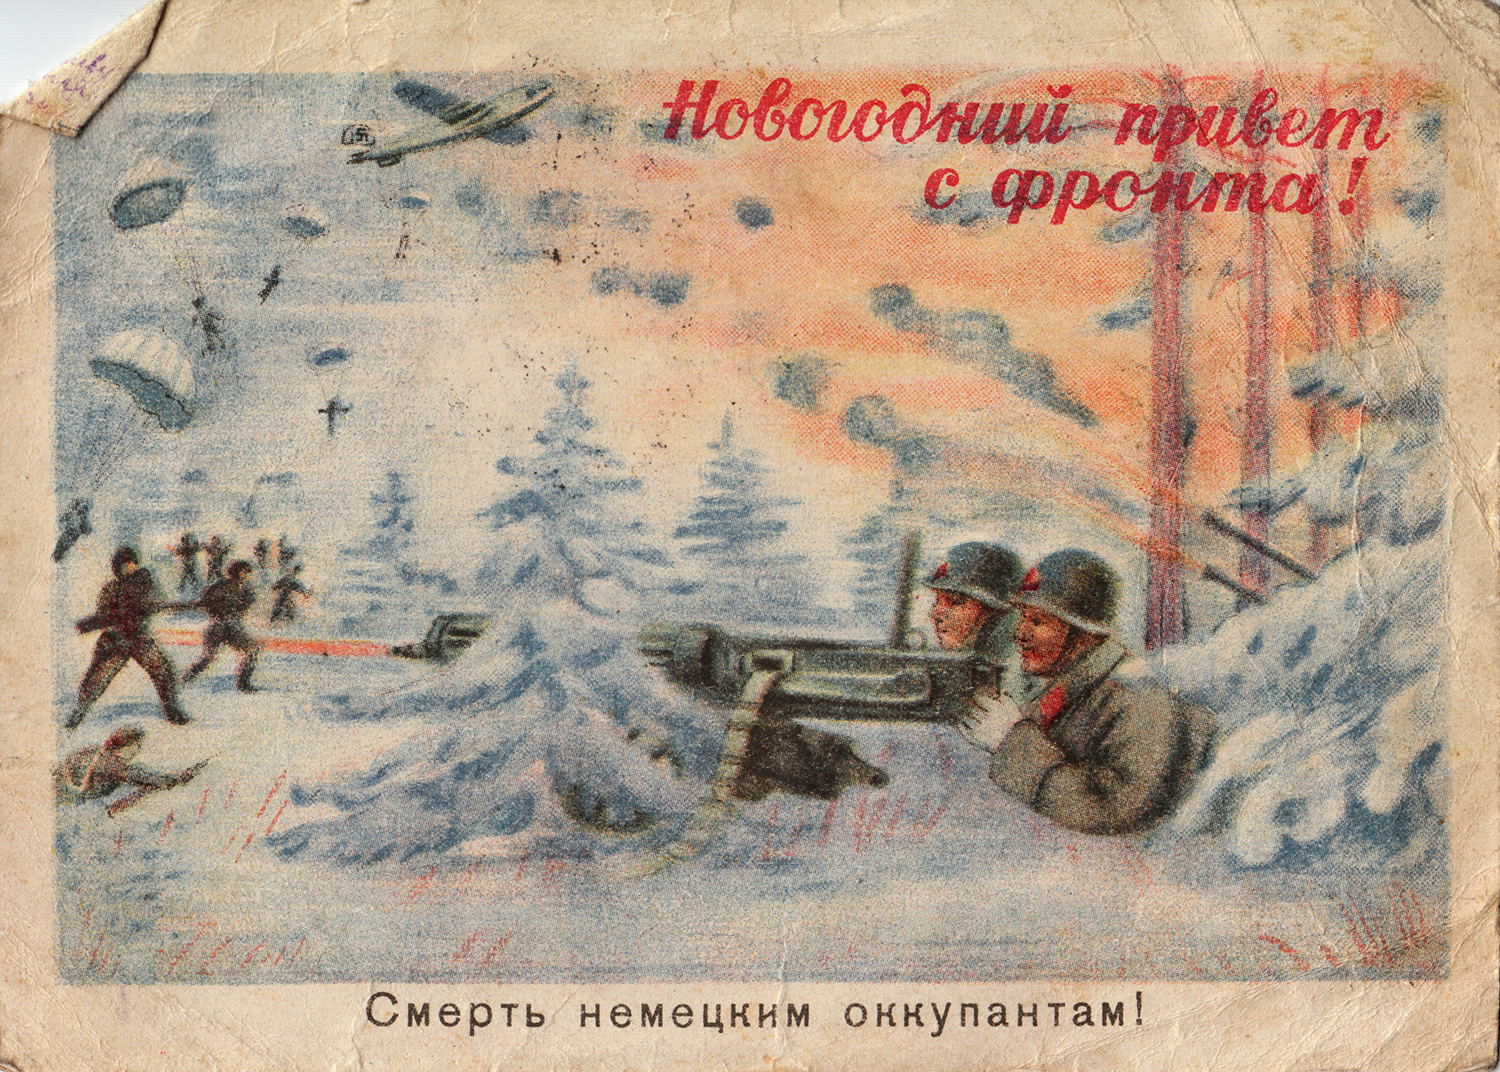 """New Year's greetings from the front!"" Postcard, sent by Miriam Kogan, dated 1/1/1942. ""To my beloved mom and dad… the Germans are reeling back… and we will celebrate Victory!"""